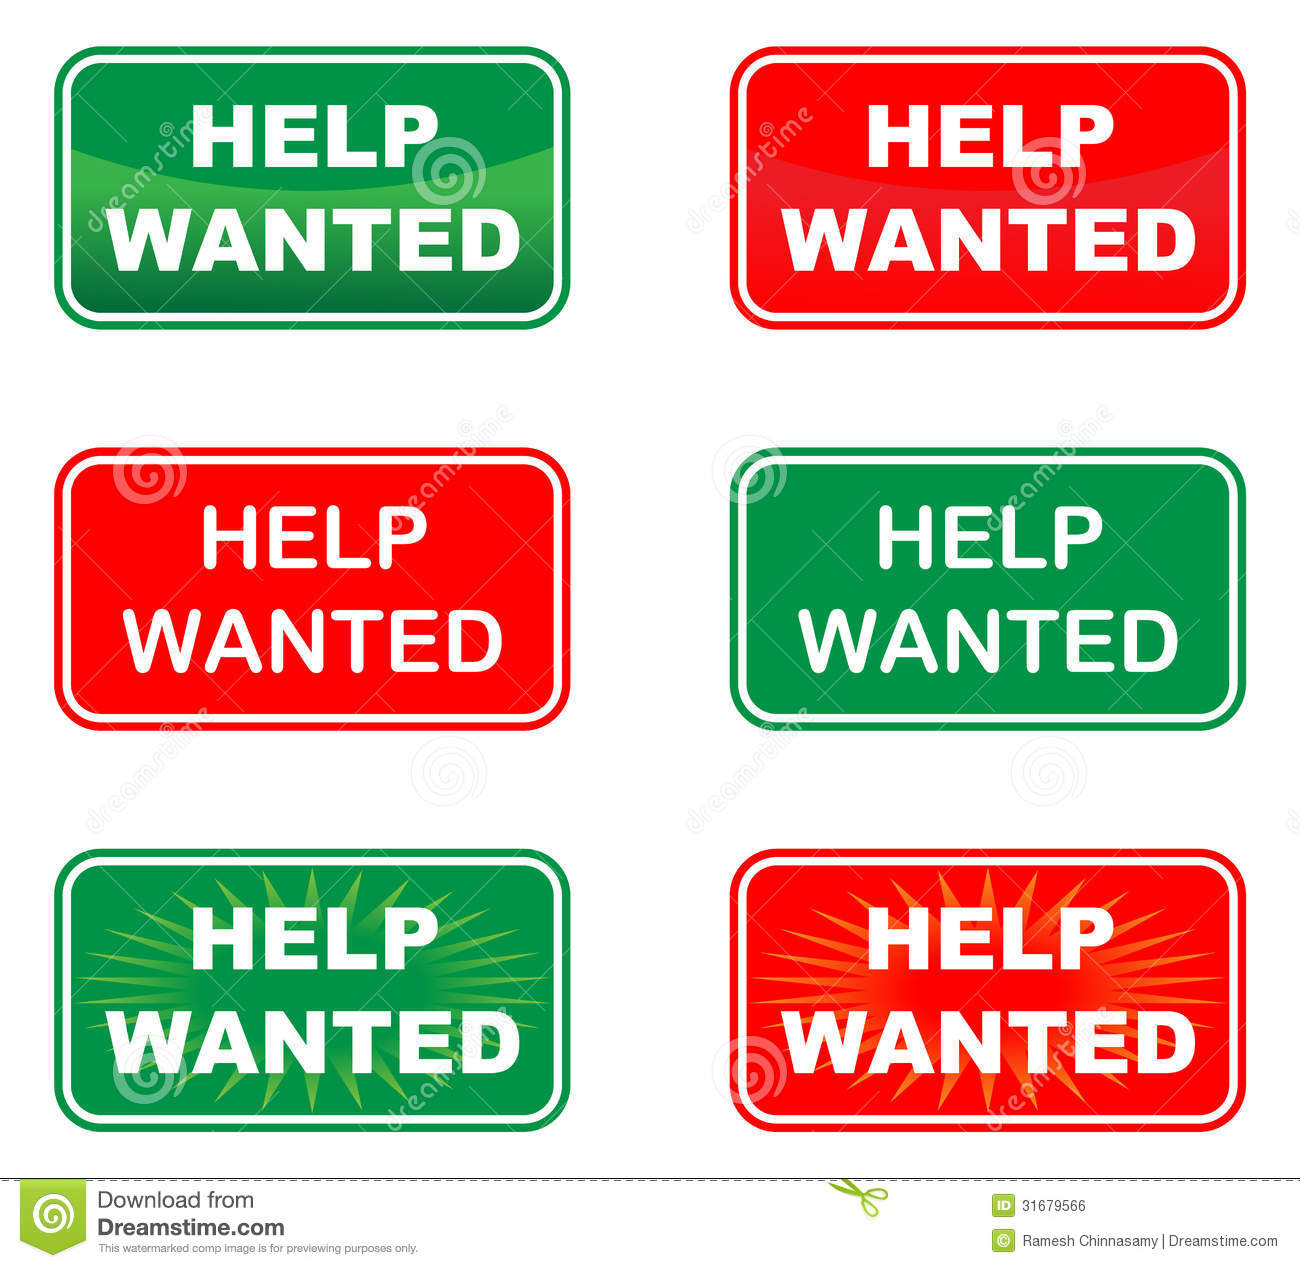 Help Wanted Royalty Free Stock Image